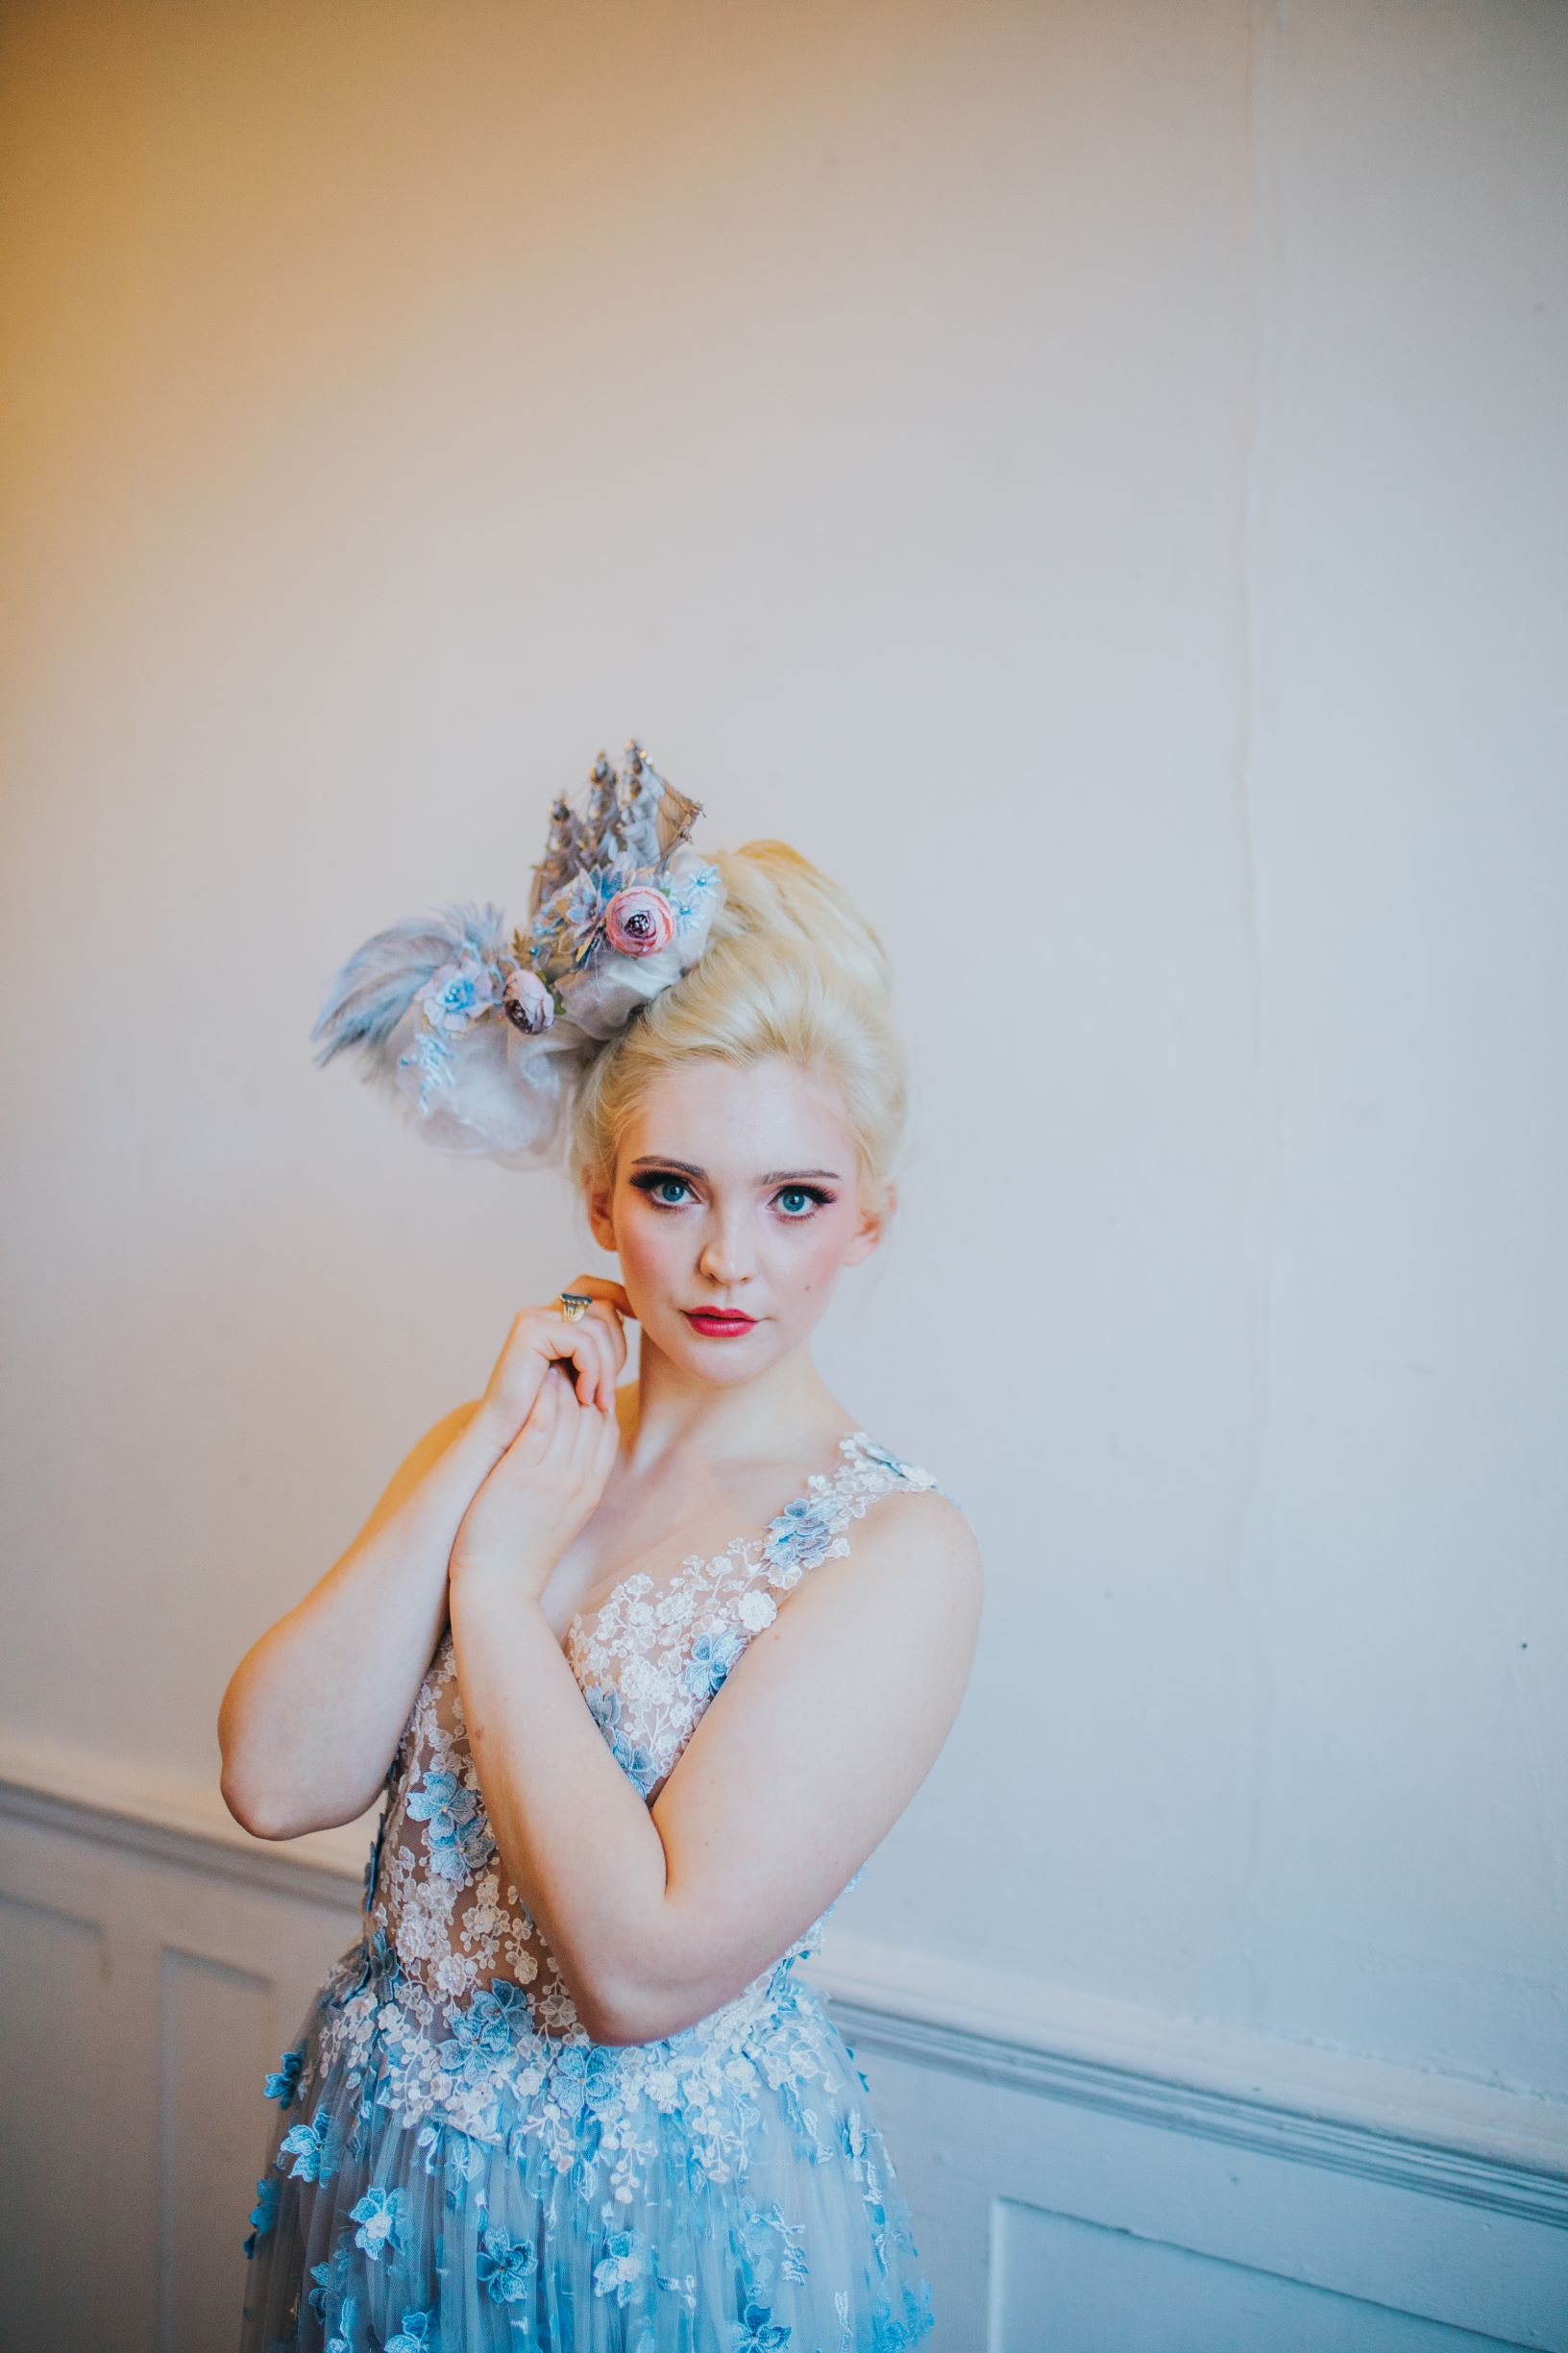 whimsical wedding- pastel wedding- laura beresford photography- unique bridalwear- alternative bridalwear- unique bridal look- bold wedding accessories